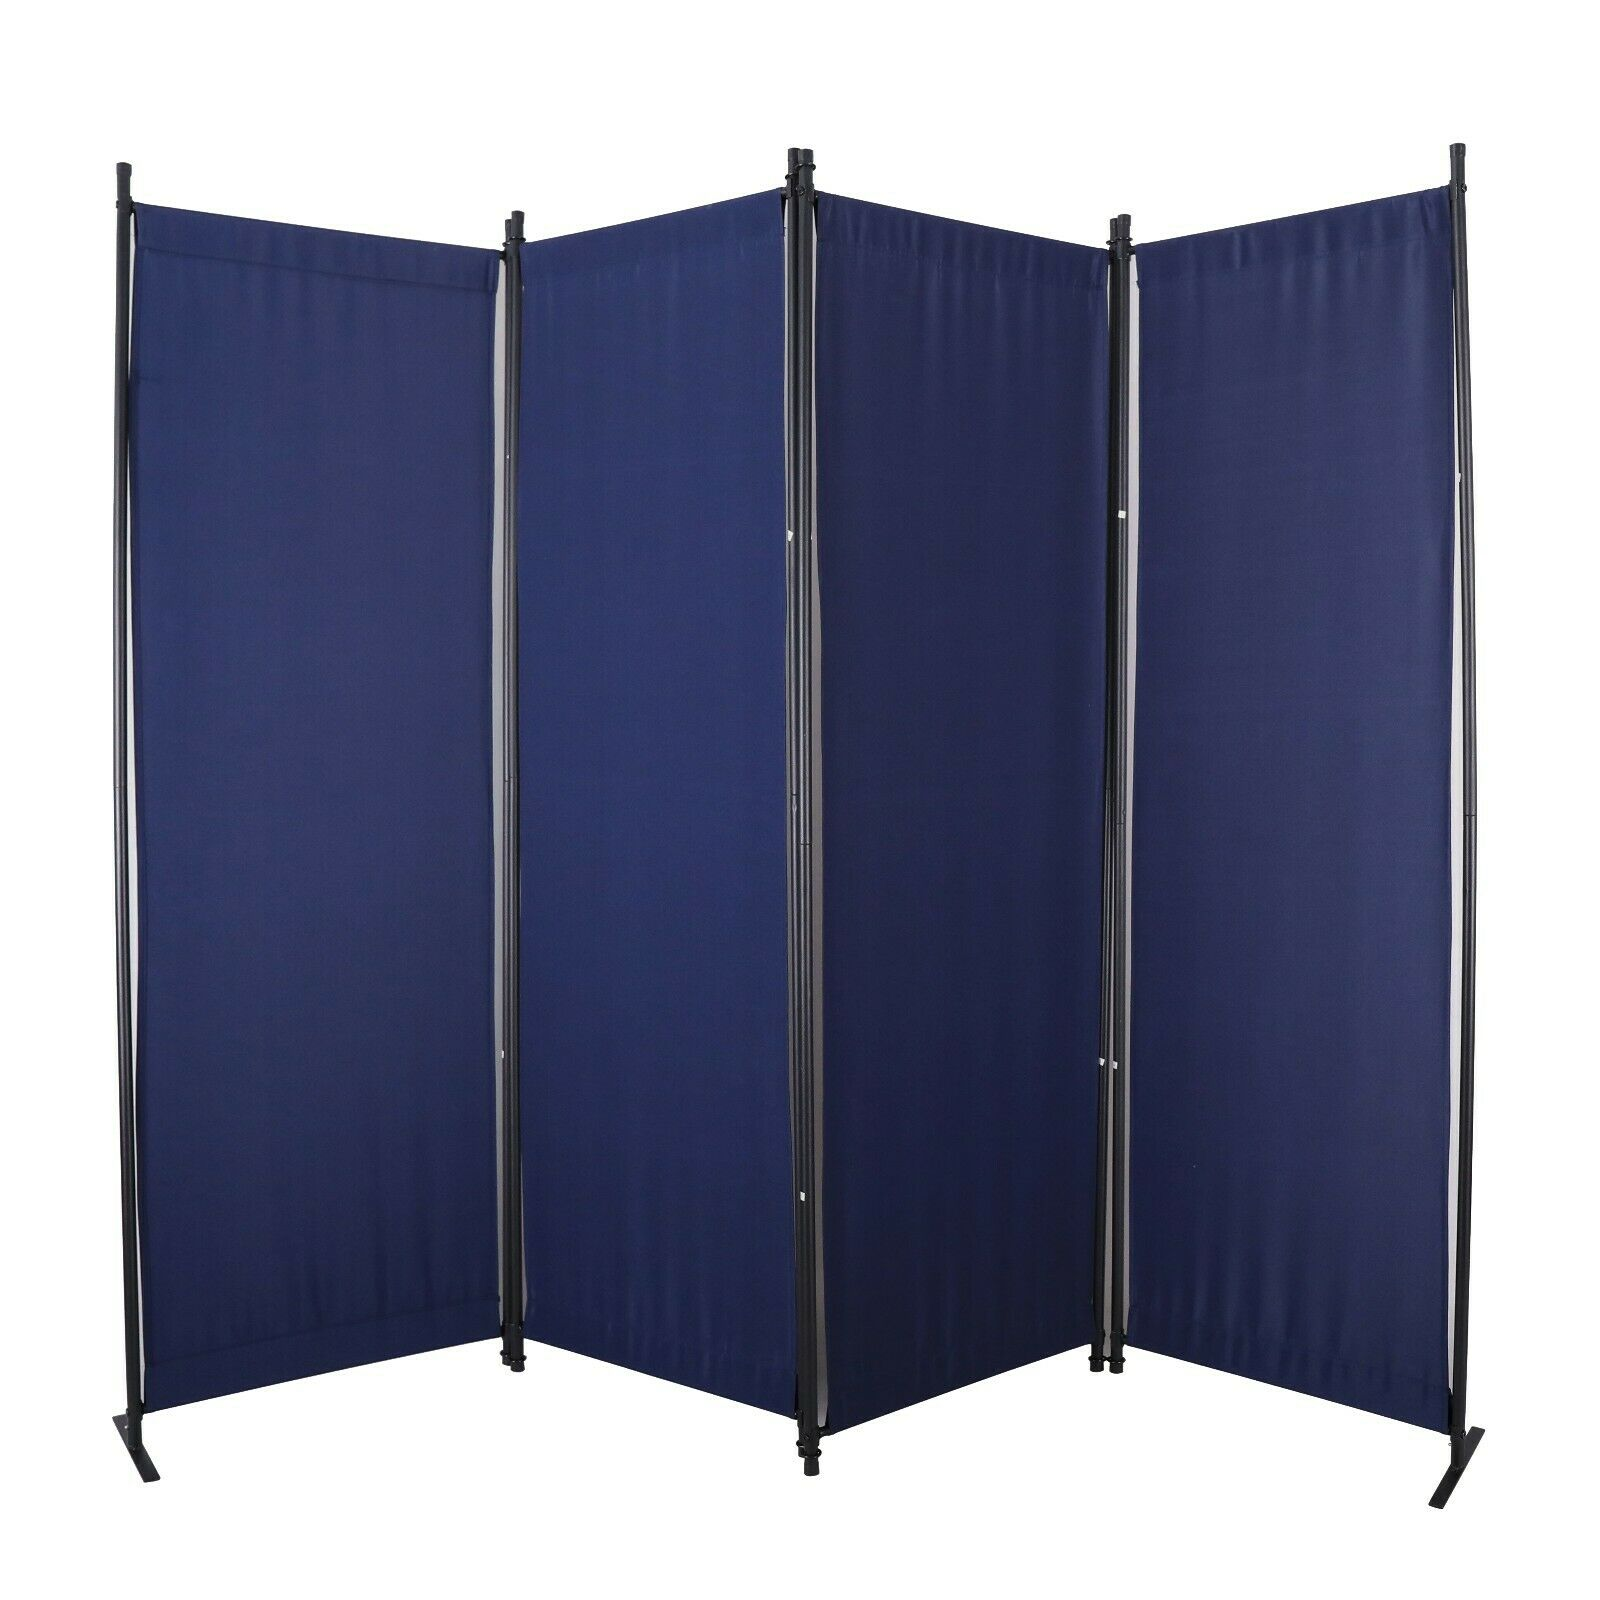 4 Panel Room Divider Privacy Screen Folding Home Accents Off